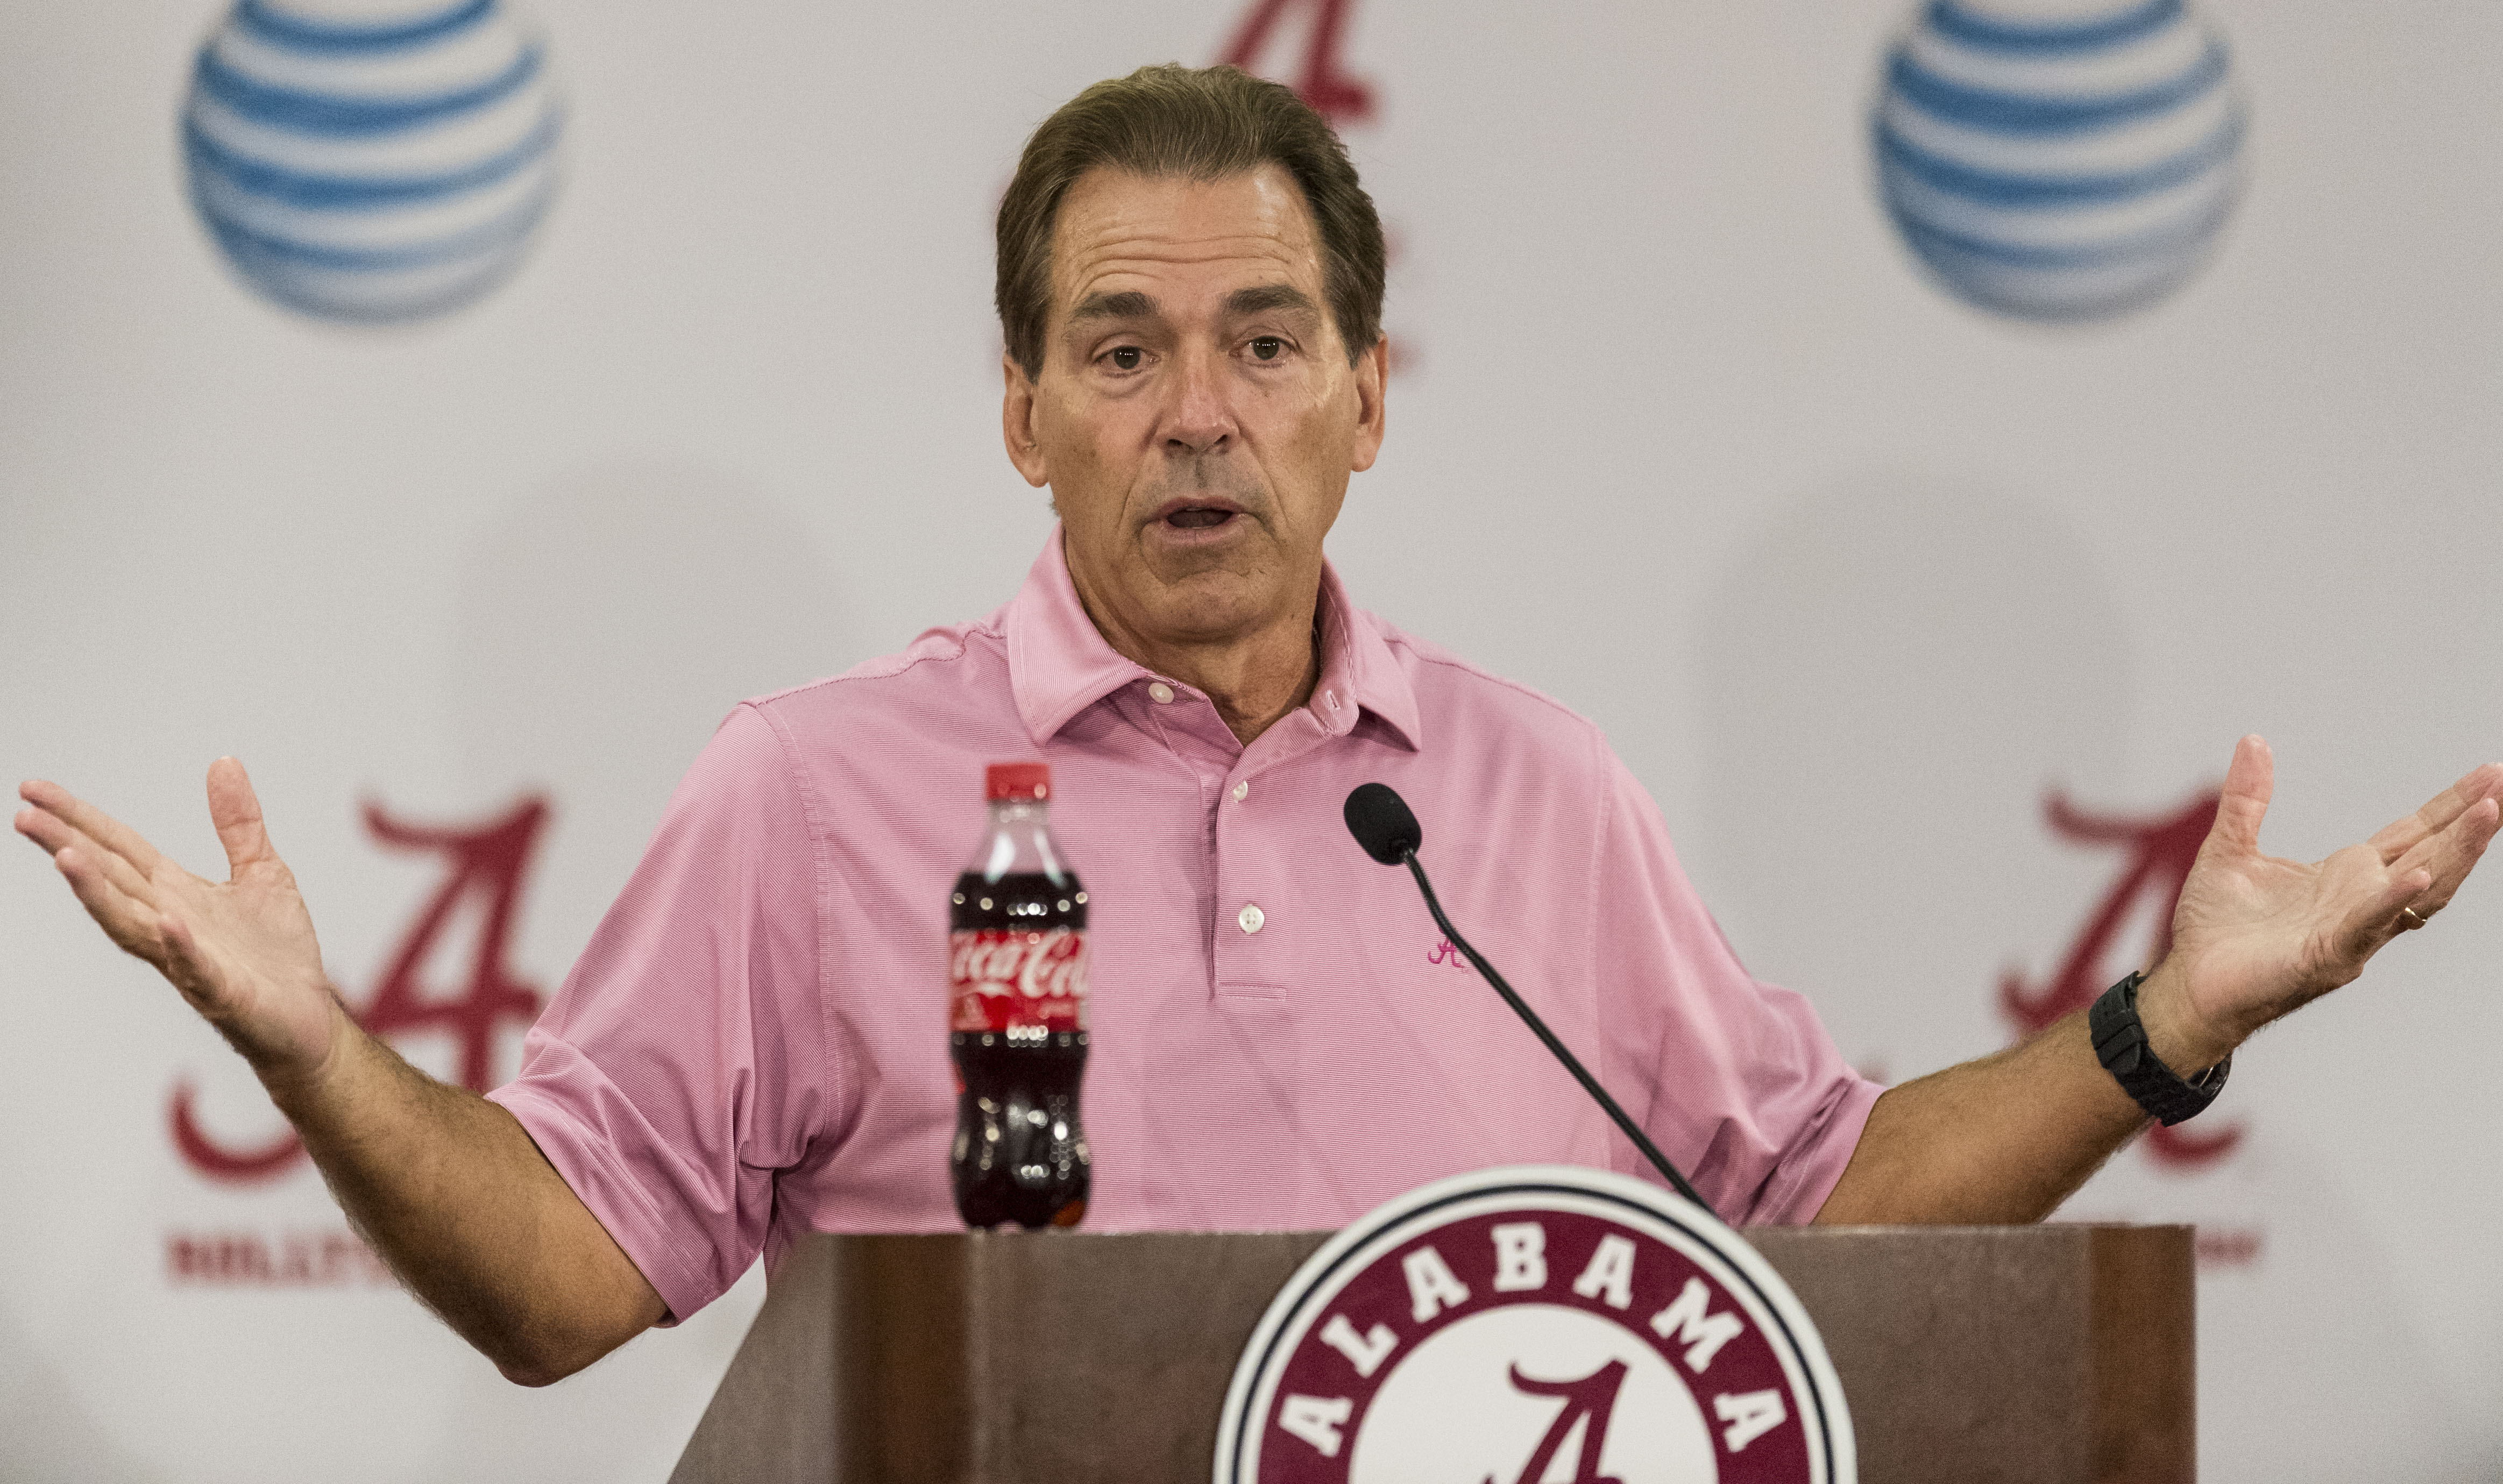 Alabama NCAA college football coach Nick Saban talks with the media at his weekly press conference, Monday, Sep. 7, 2015,  in Tuscaloosa, Ala.  (Vasha Hunt/AL.com via AP) MAGS OUT; MANDATORY CREDIT